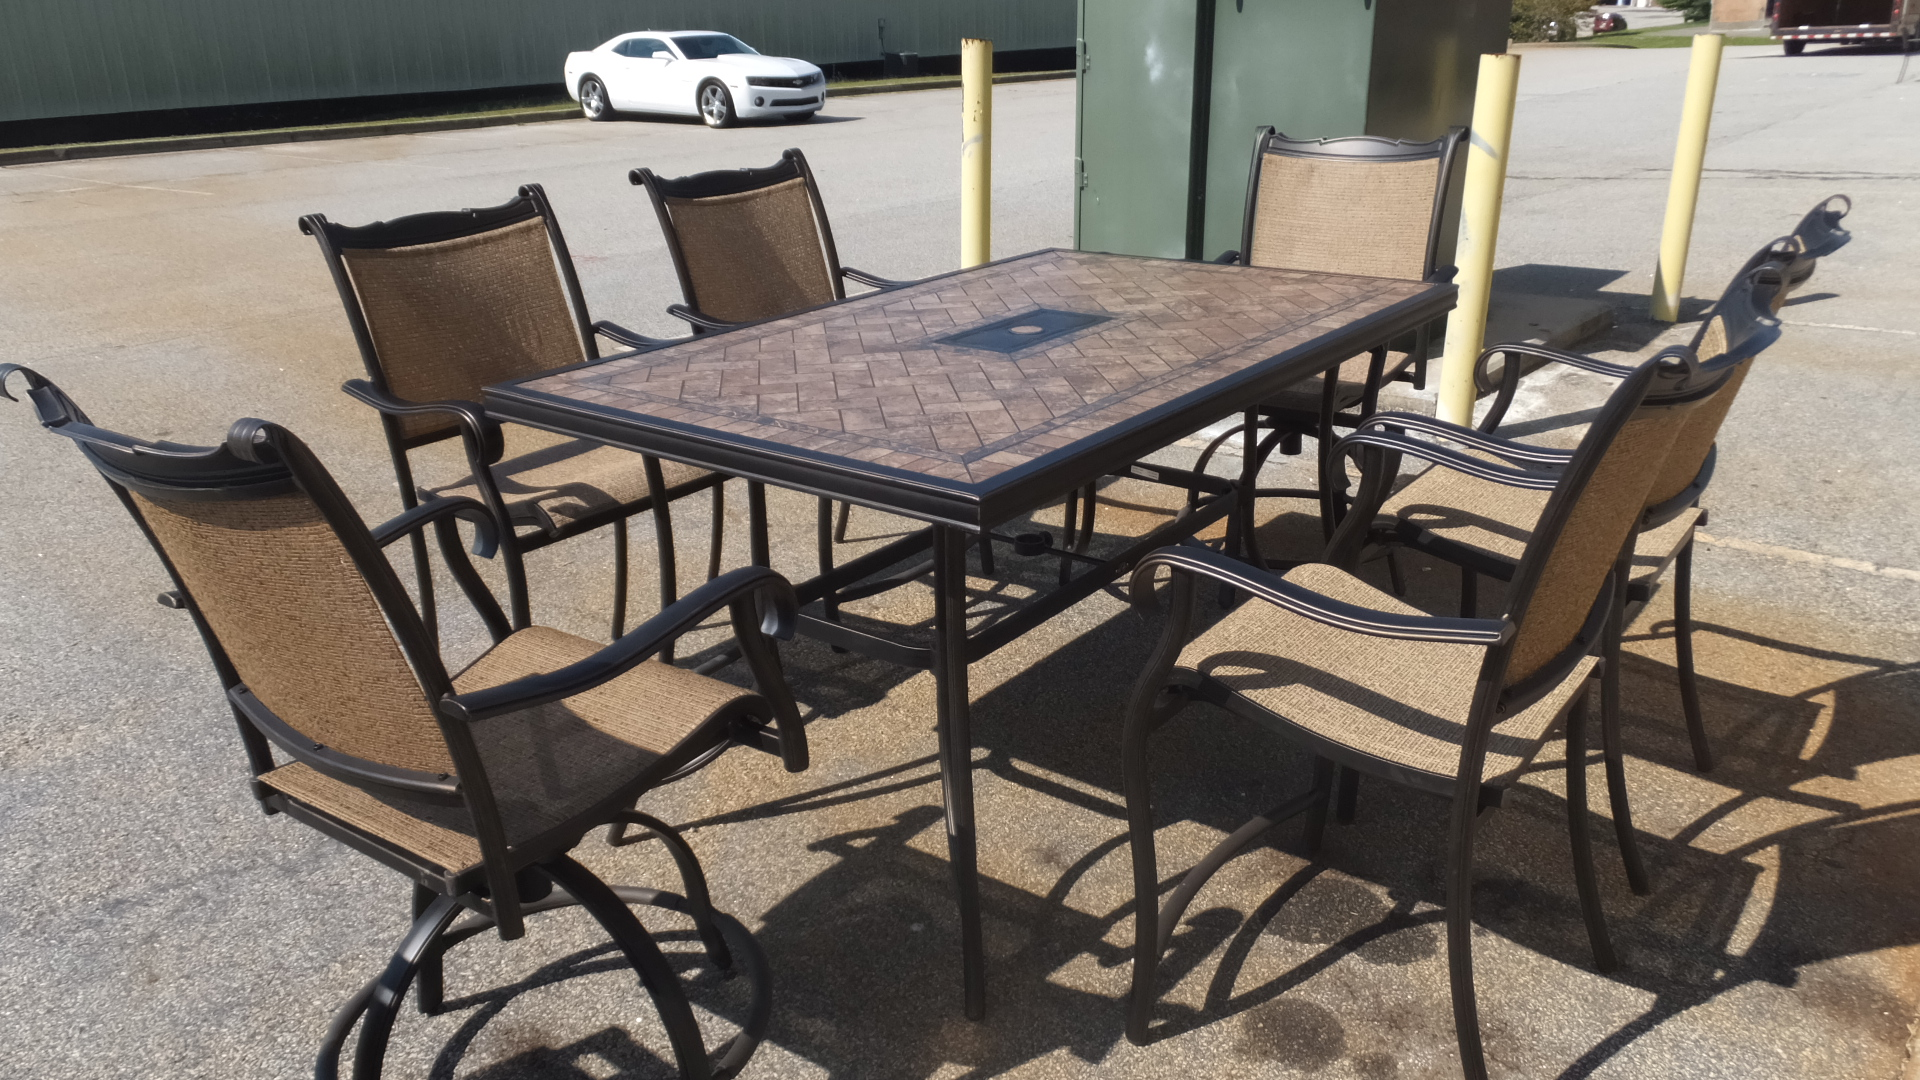 Outdoor patio furniture sale 50 off retail many pieces for Patio furniture retailers